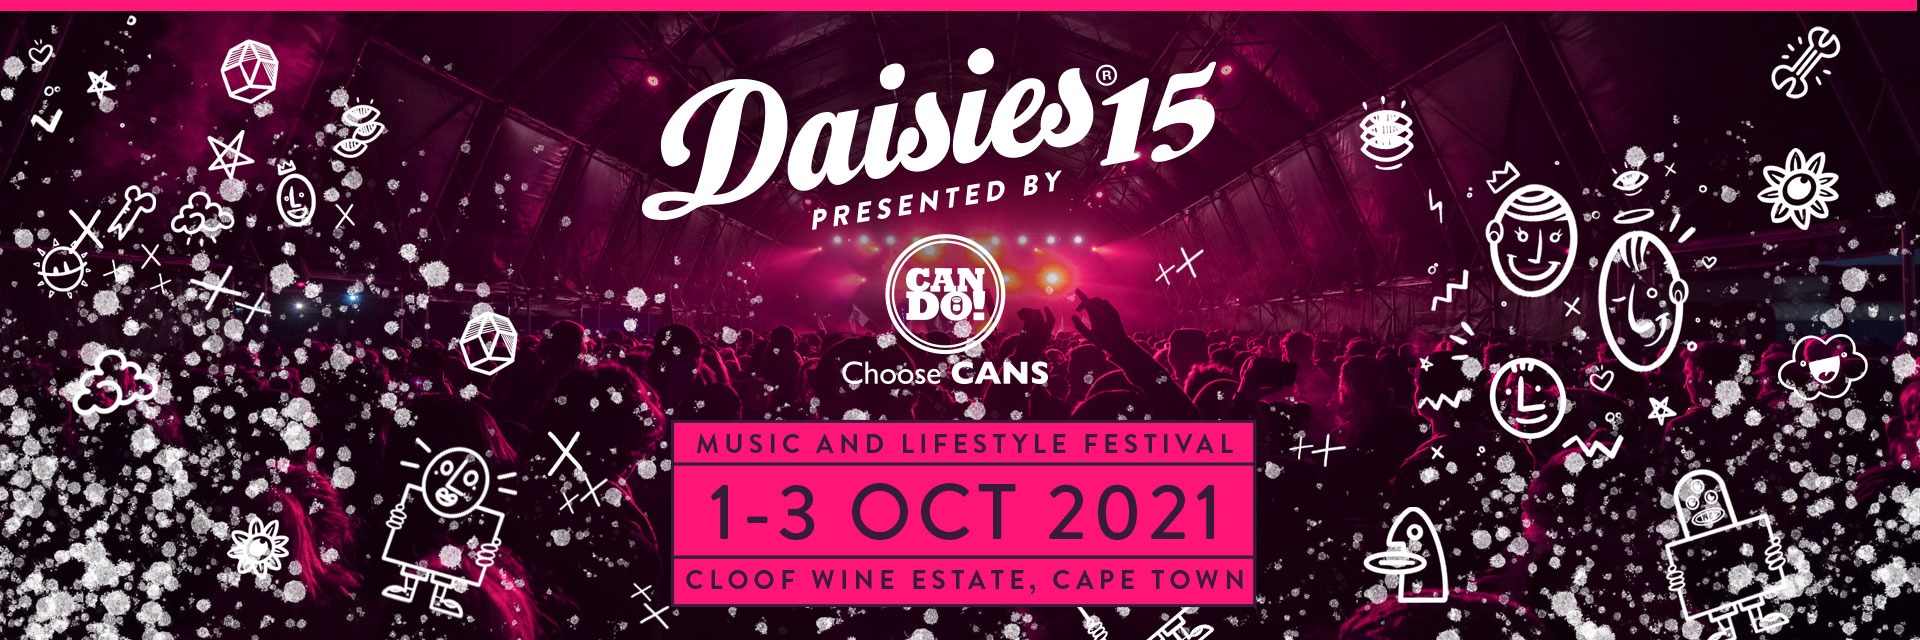 Book Tickets For Daisies15 Cape Town With Cape May Calendar Of Events 2021